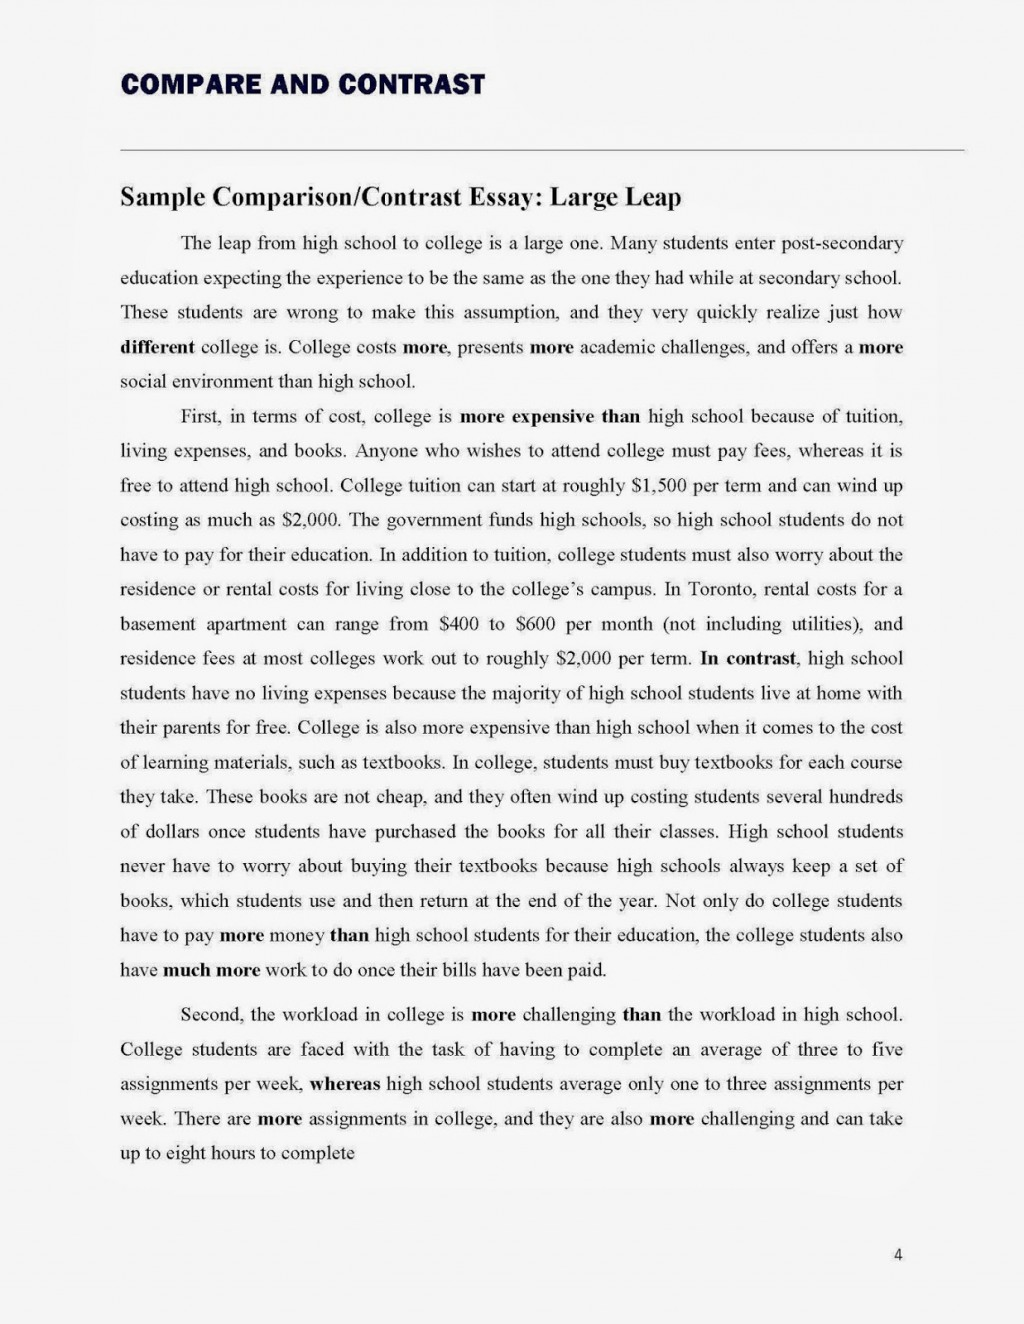 006 Essay Example Compare And Contrast Dog Cat Compare2band2bcontrast2bessay Page 4 Excellent Comparison Between Cats Dogs Pet Large